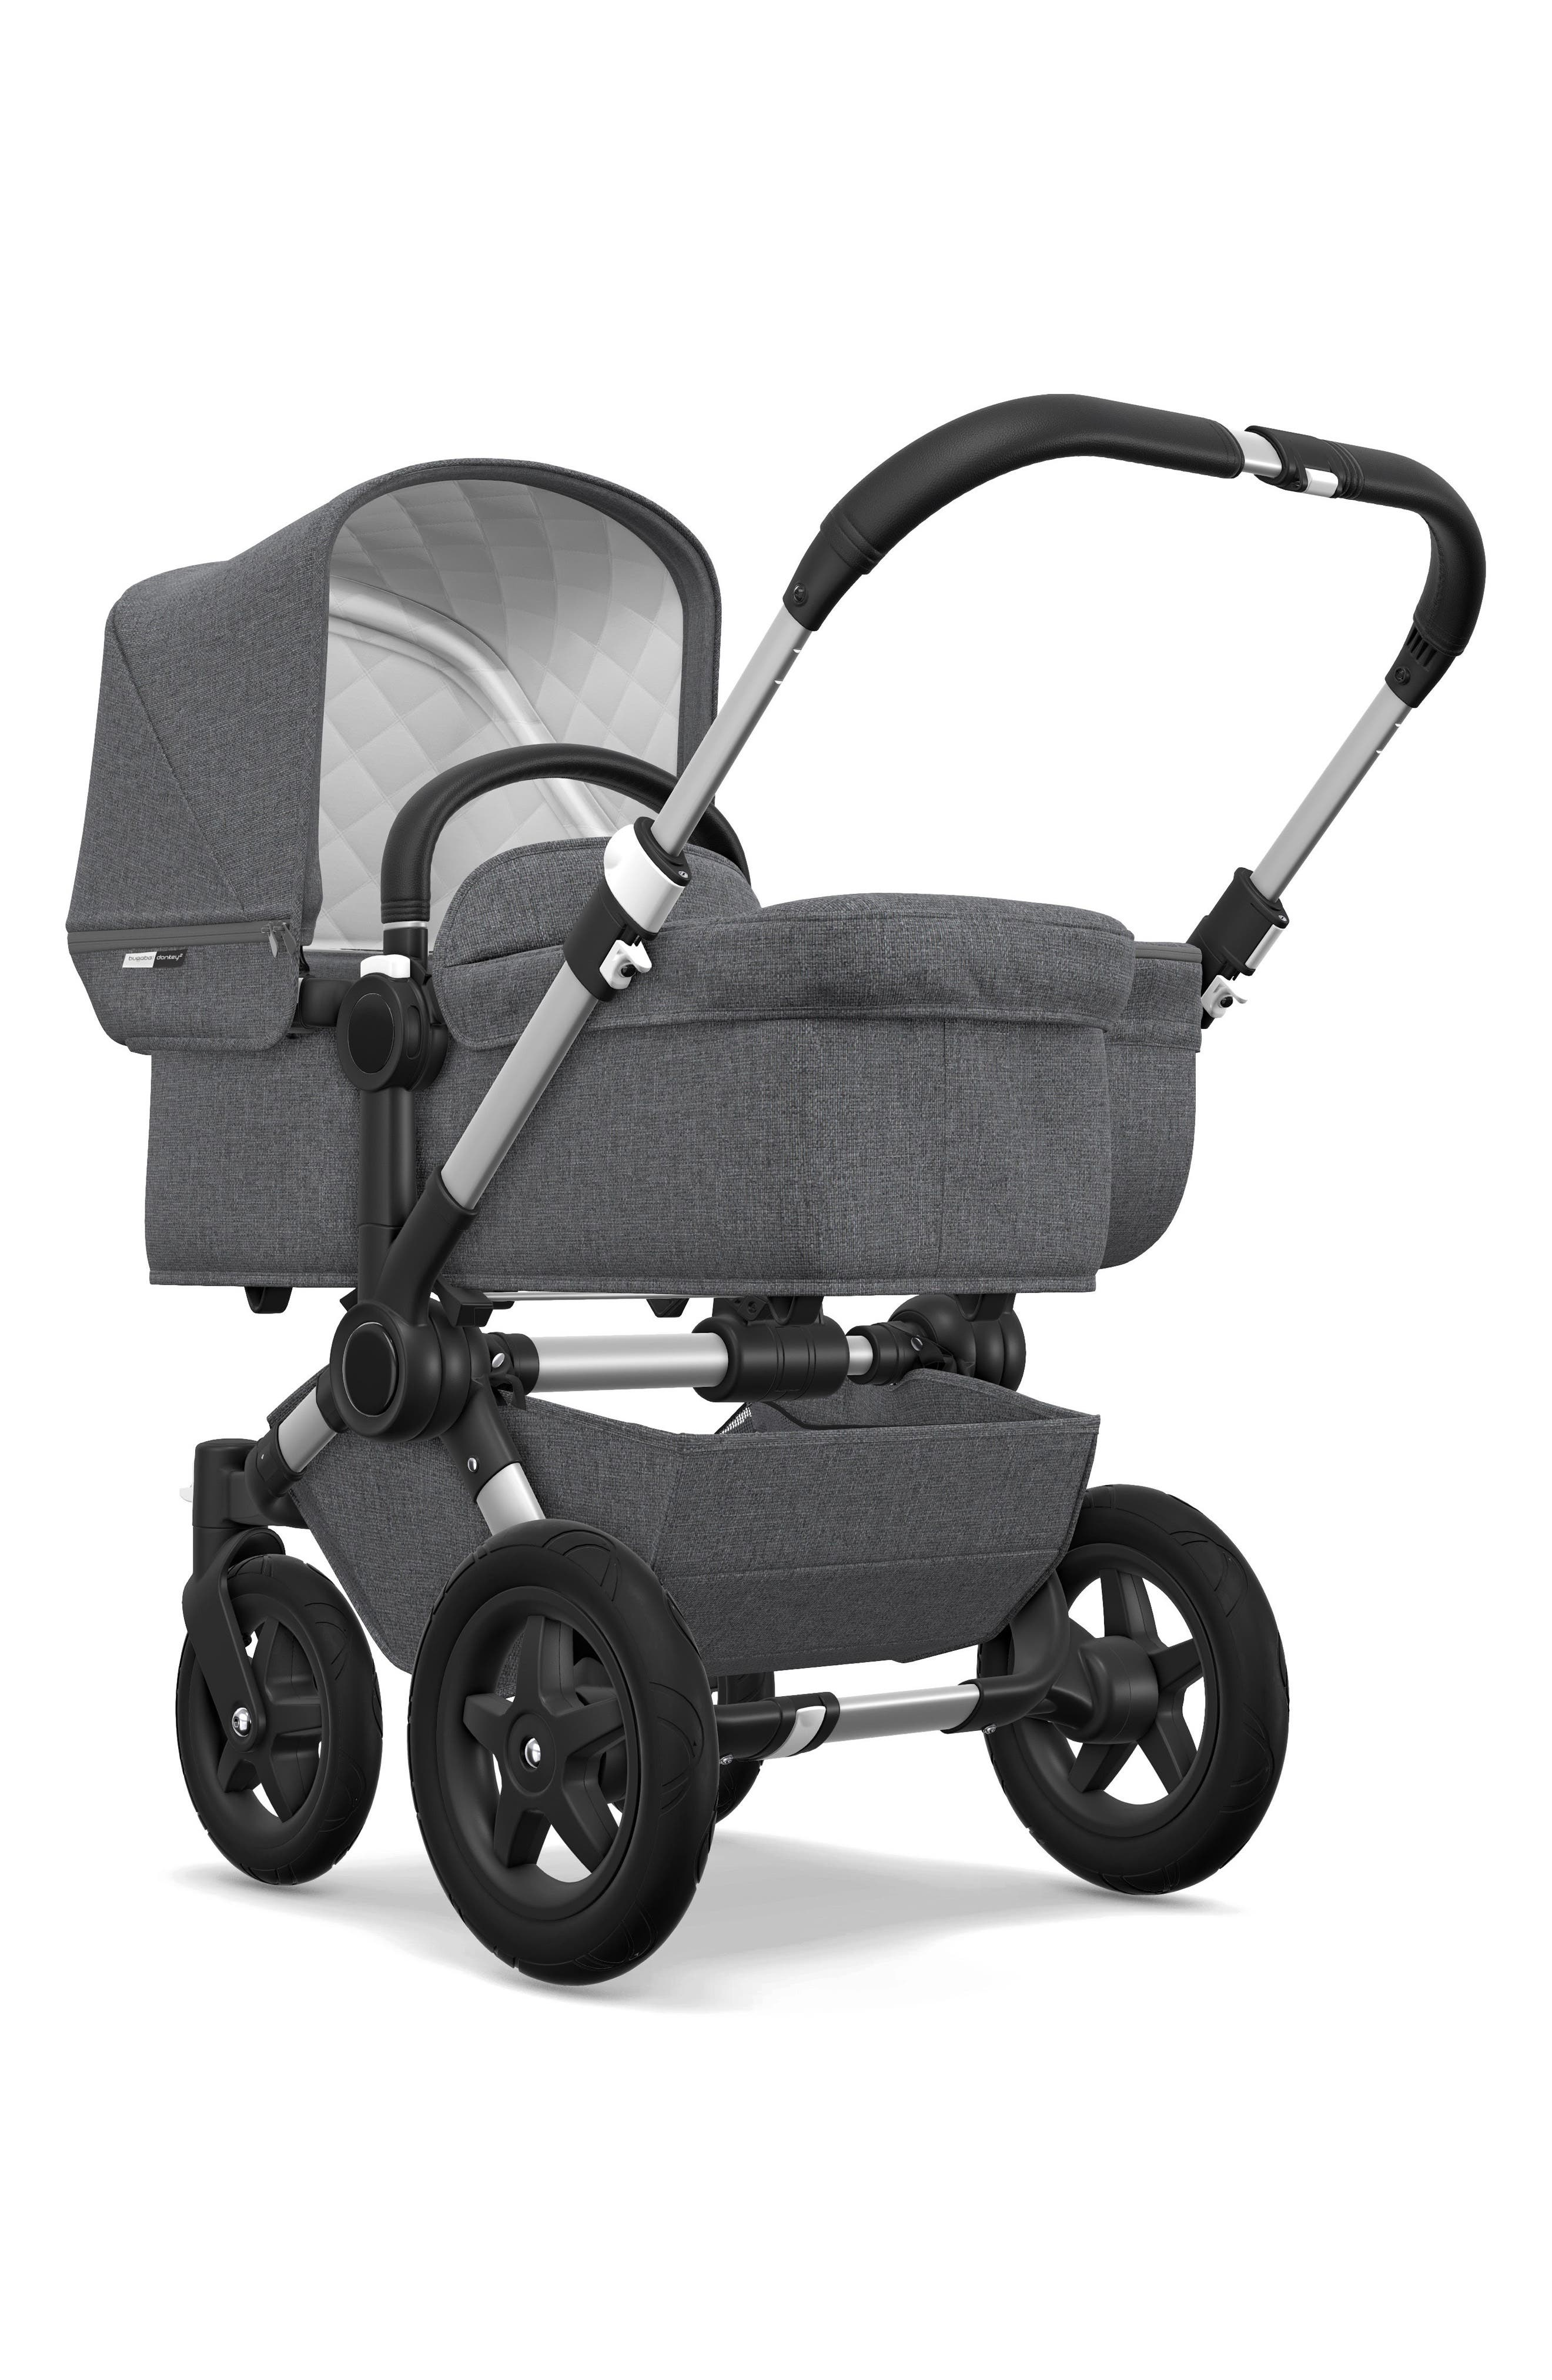 Donkey2 Classic Mono Complete Stroller with Bassinet,                             Alternate thumbnail 3, color,                             GREY MELANGE/ ALUMINUM